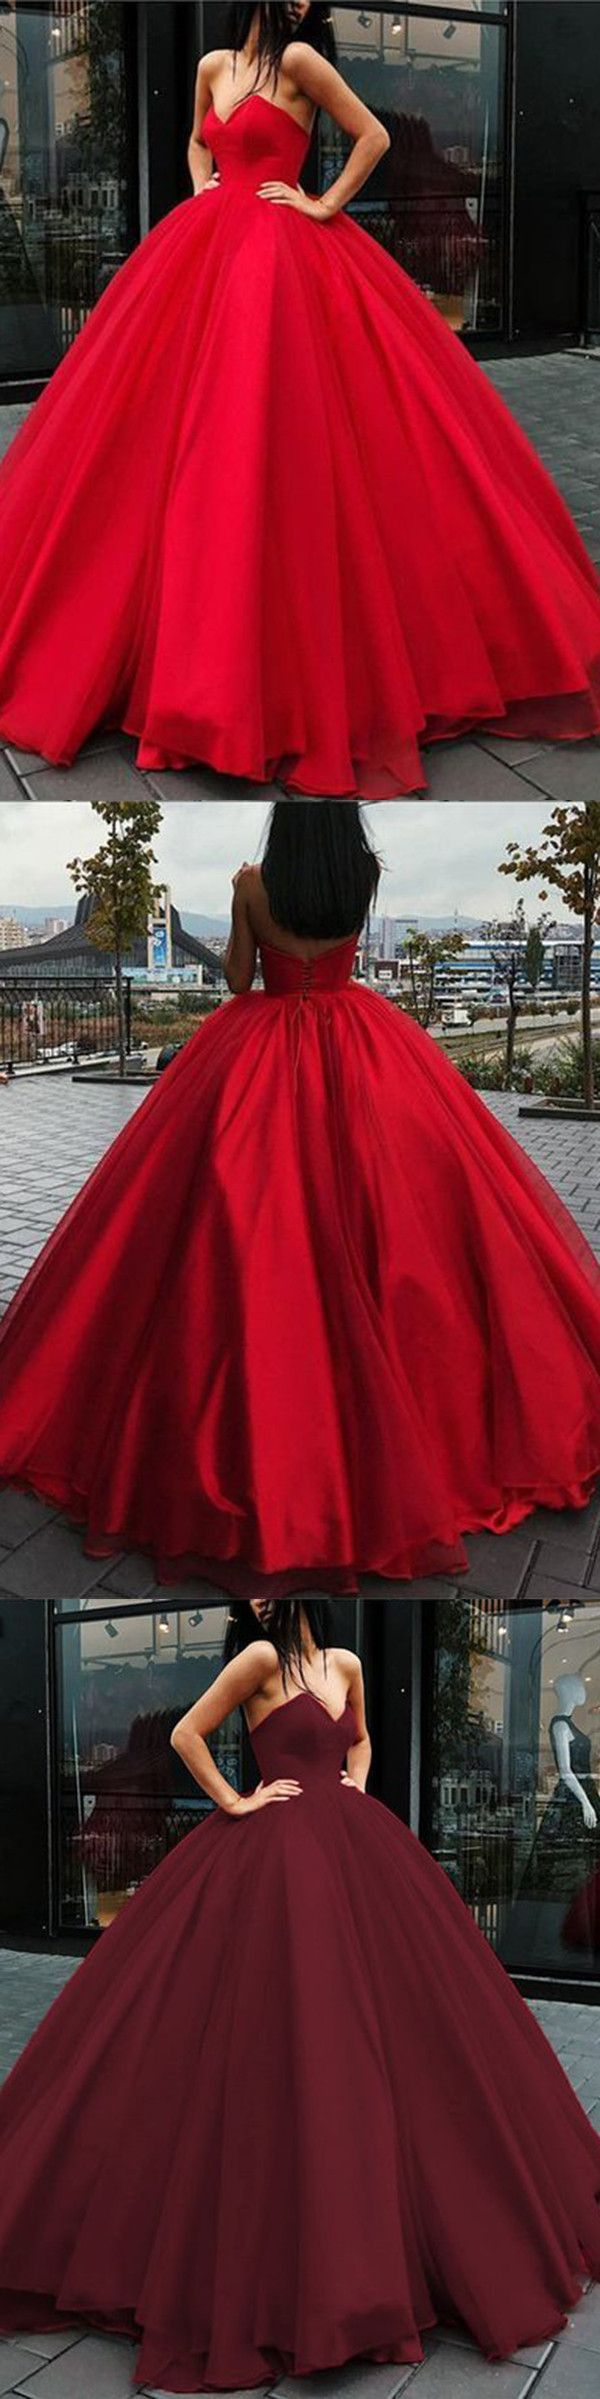 Ball gown red prom dress sweetheart simple long cheap prom dress